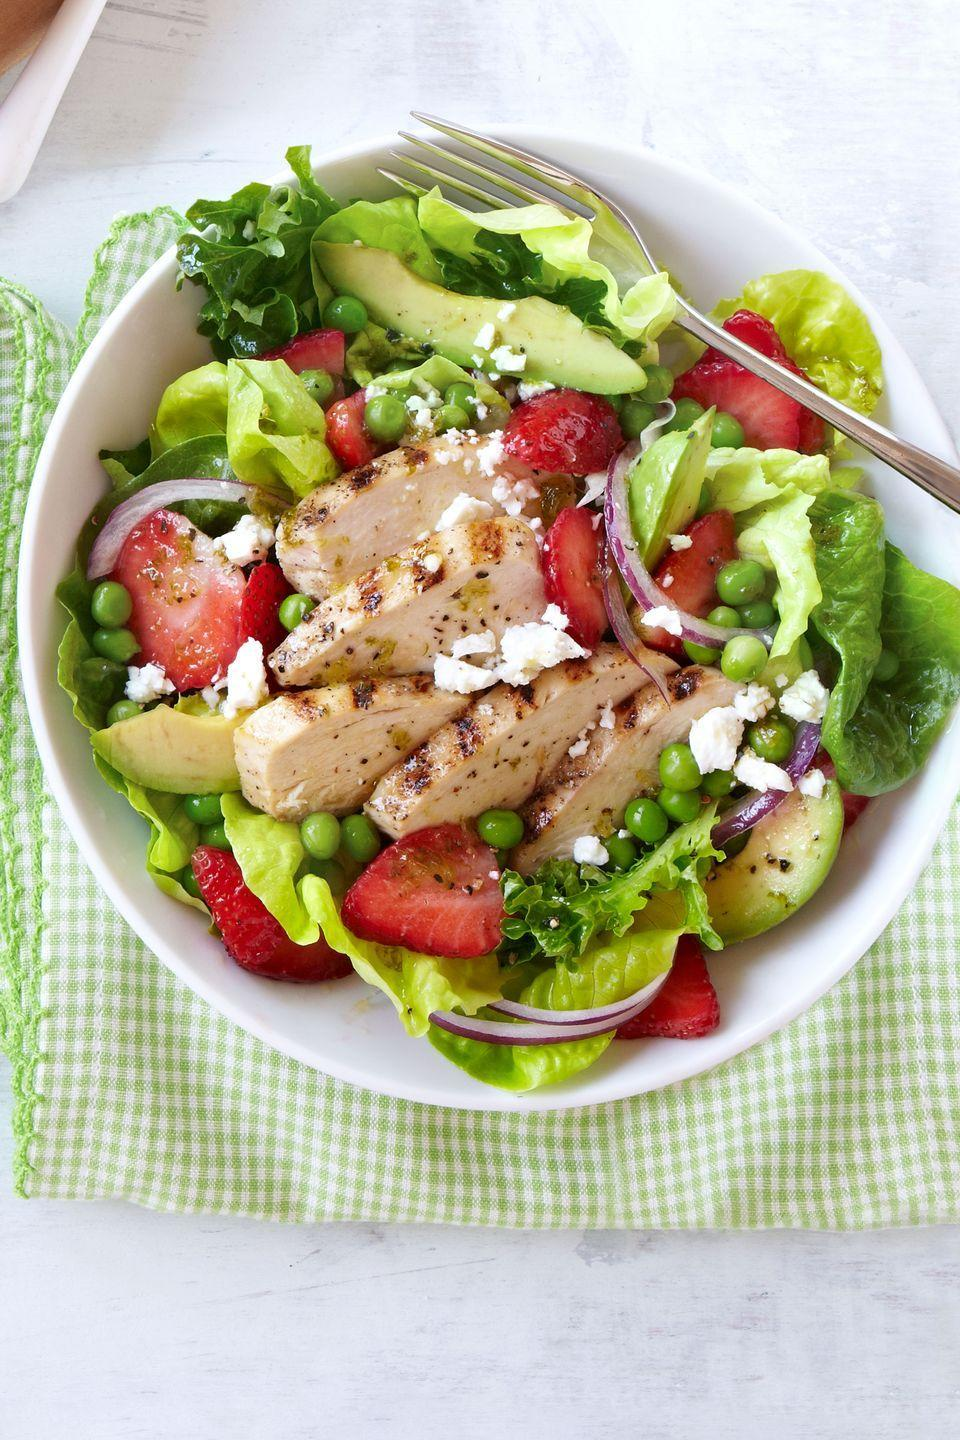 "<p>Fresh strawberries add a sweet and juicy element to this spring salad.</p><p><a href=""https://www.countryliving.com/food-drinks/recipes/a38097/grilled-chicken-and-strawberry-cobb-salad-recipe/"" rel=""nofollow noopener"" target=""_blank"" data-ylk=""slk:Get the recipe."" class=""link rapid-noclick-resp""><strong>Get the recipe.</strong></a></p>"